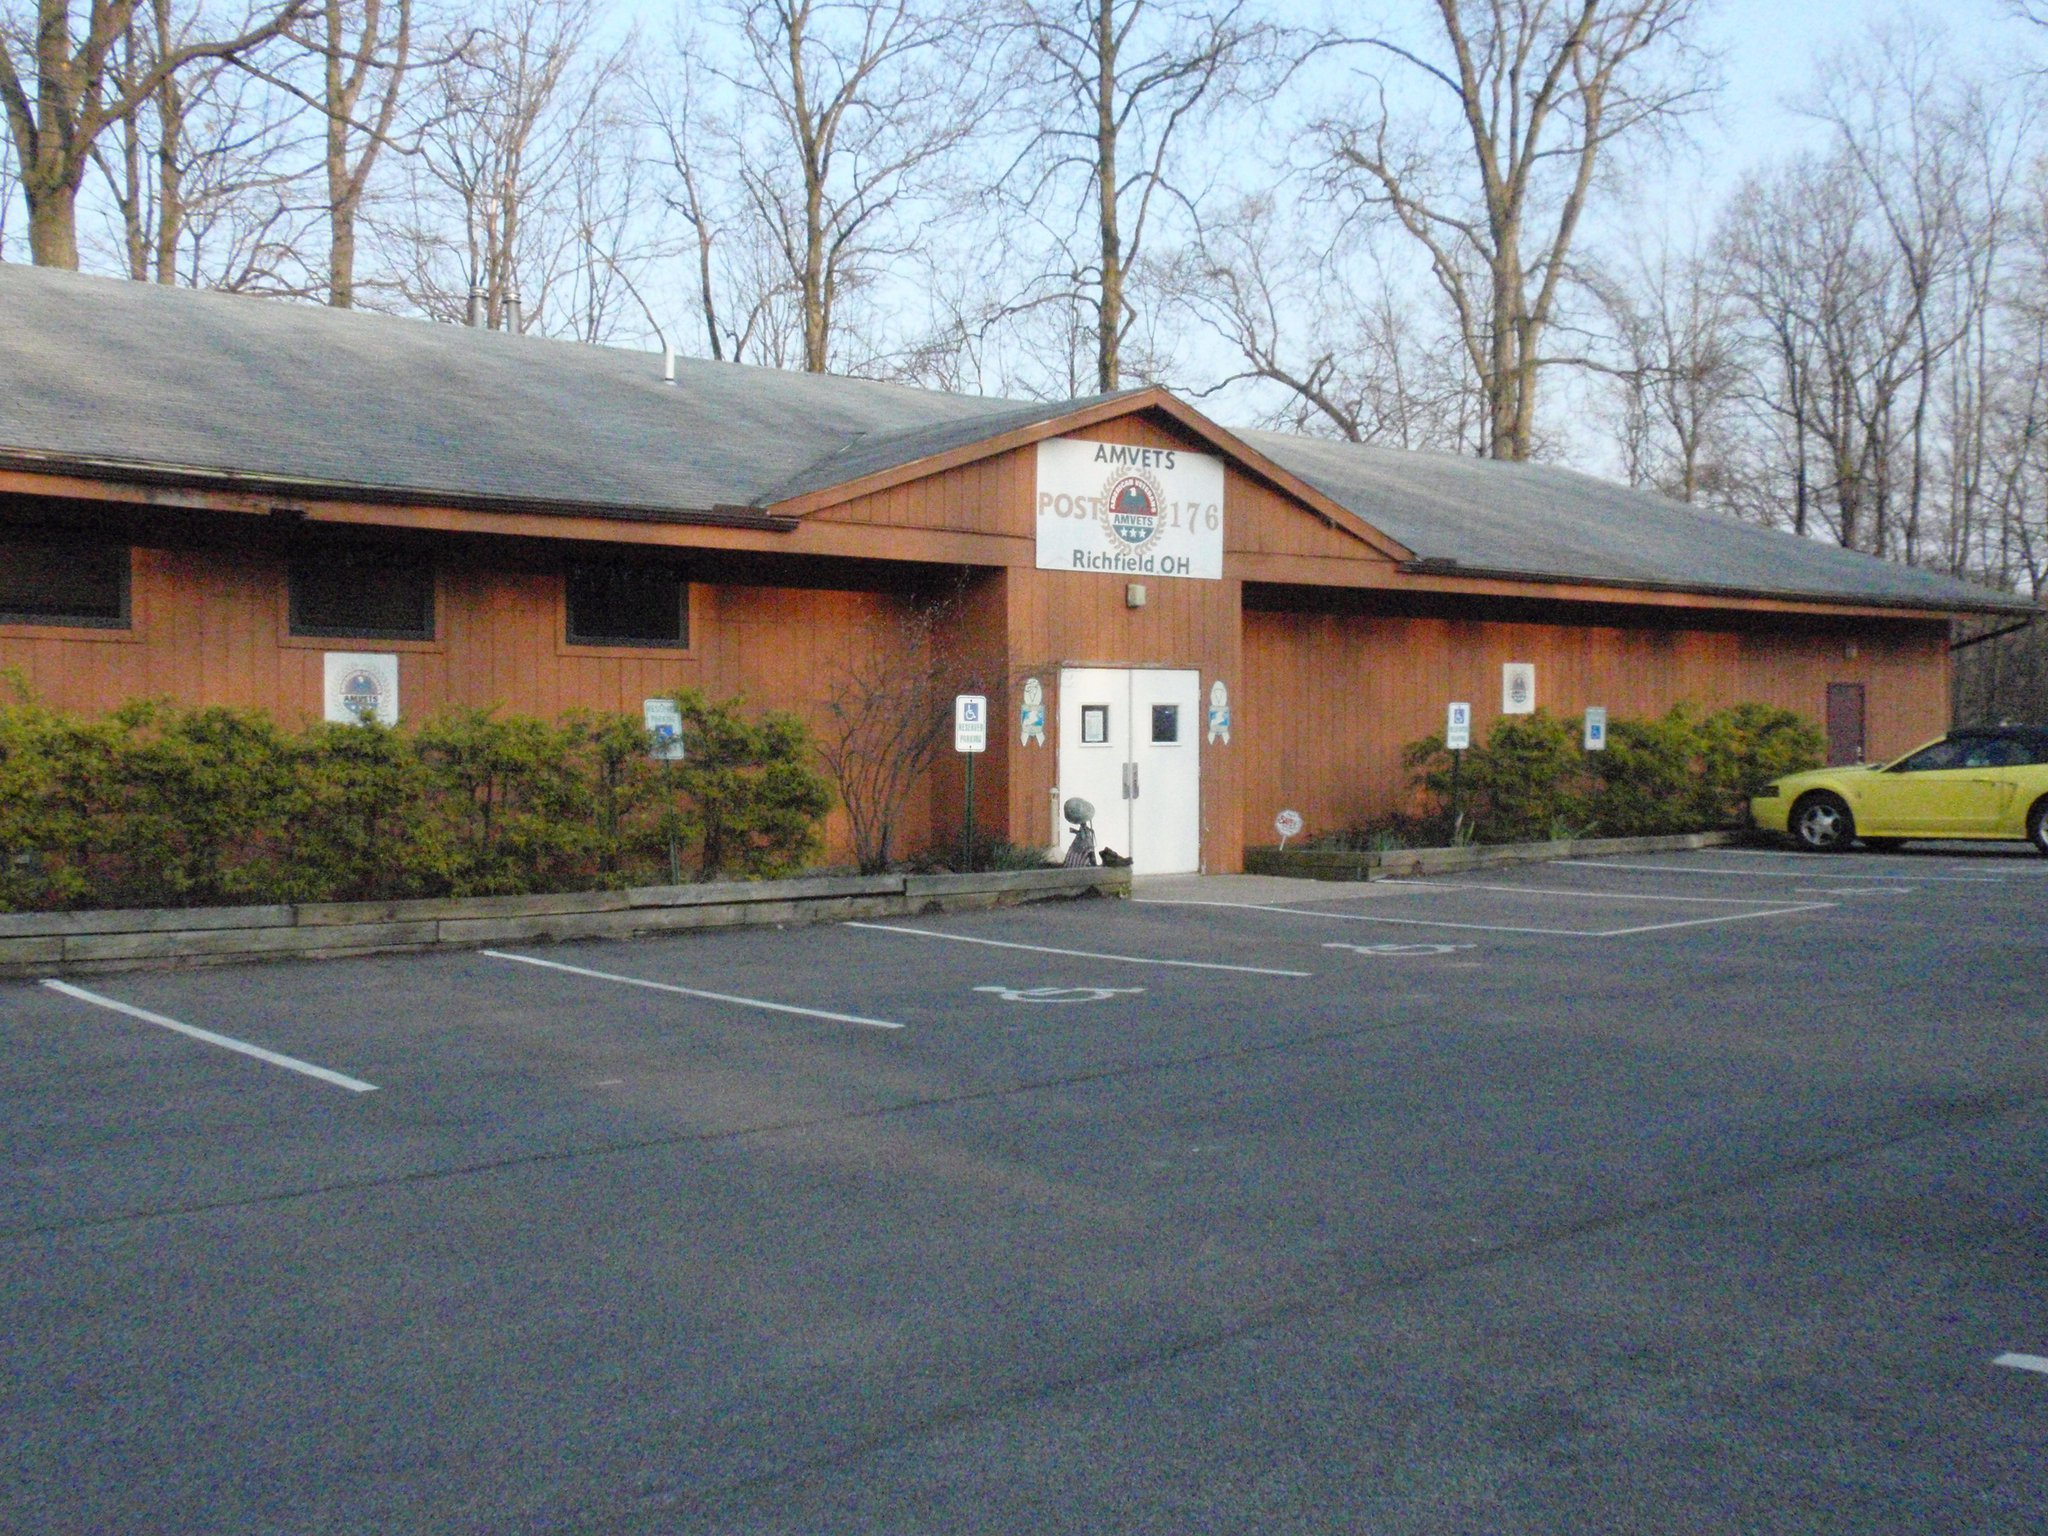 Picture of entrance to AMVETS POST 176